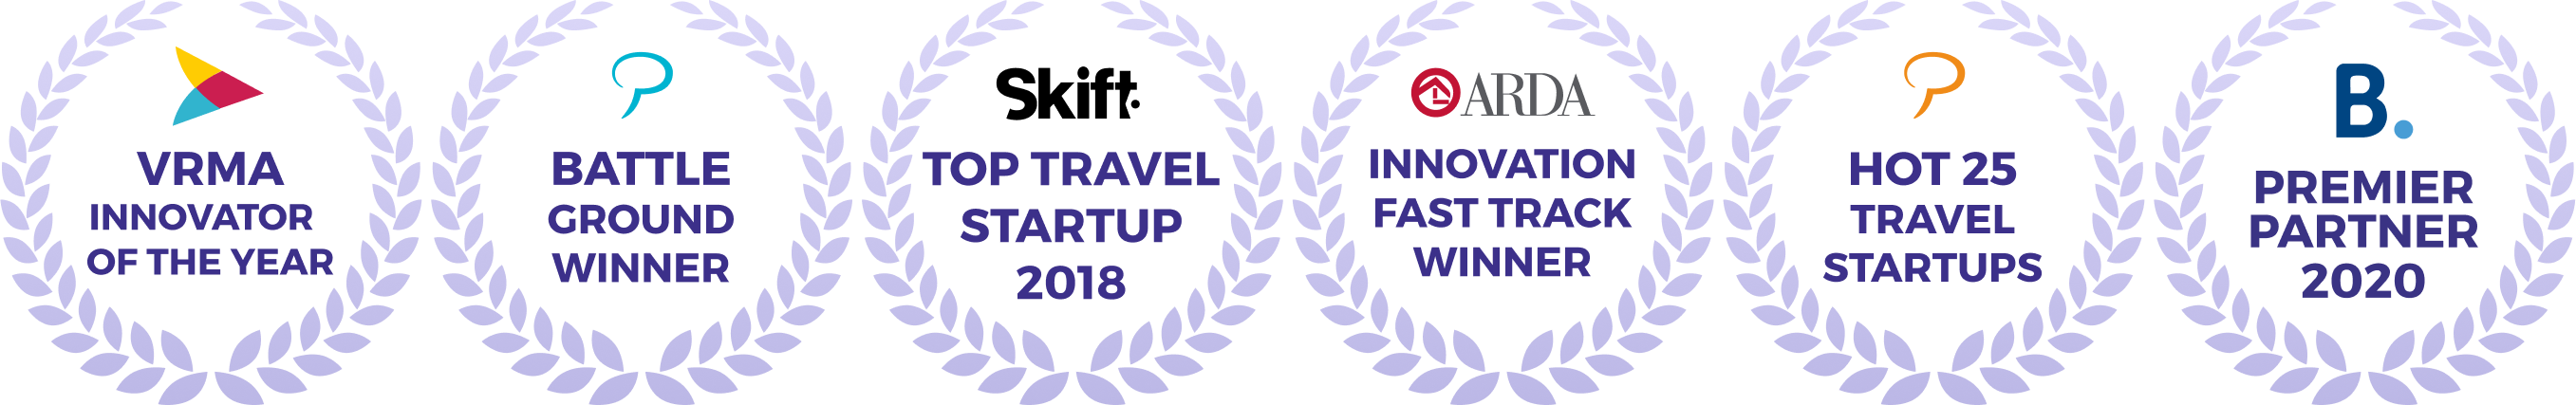 Futurestay's awards granted by: VRMA, Phocuswright, Skift, ARDA, and Booking.com